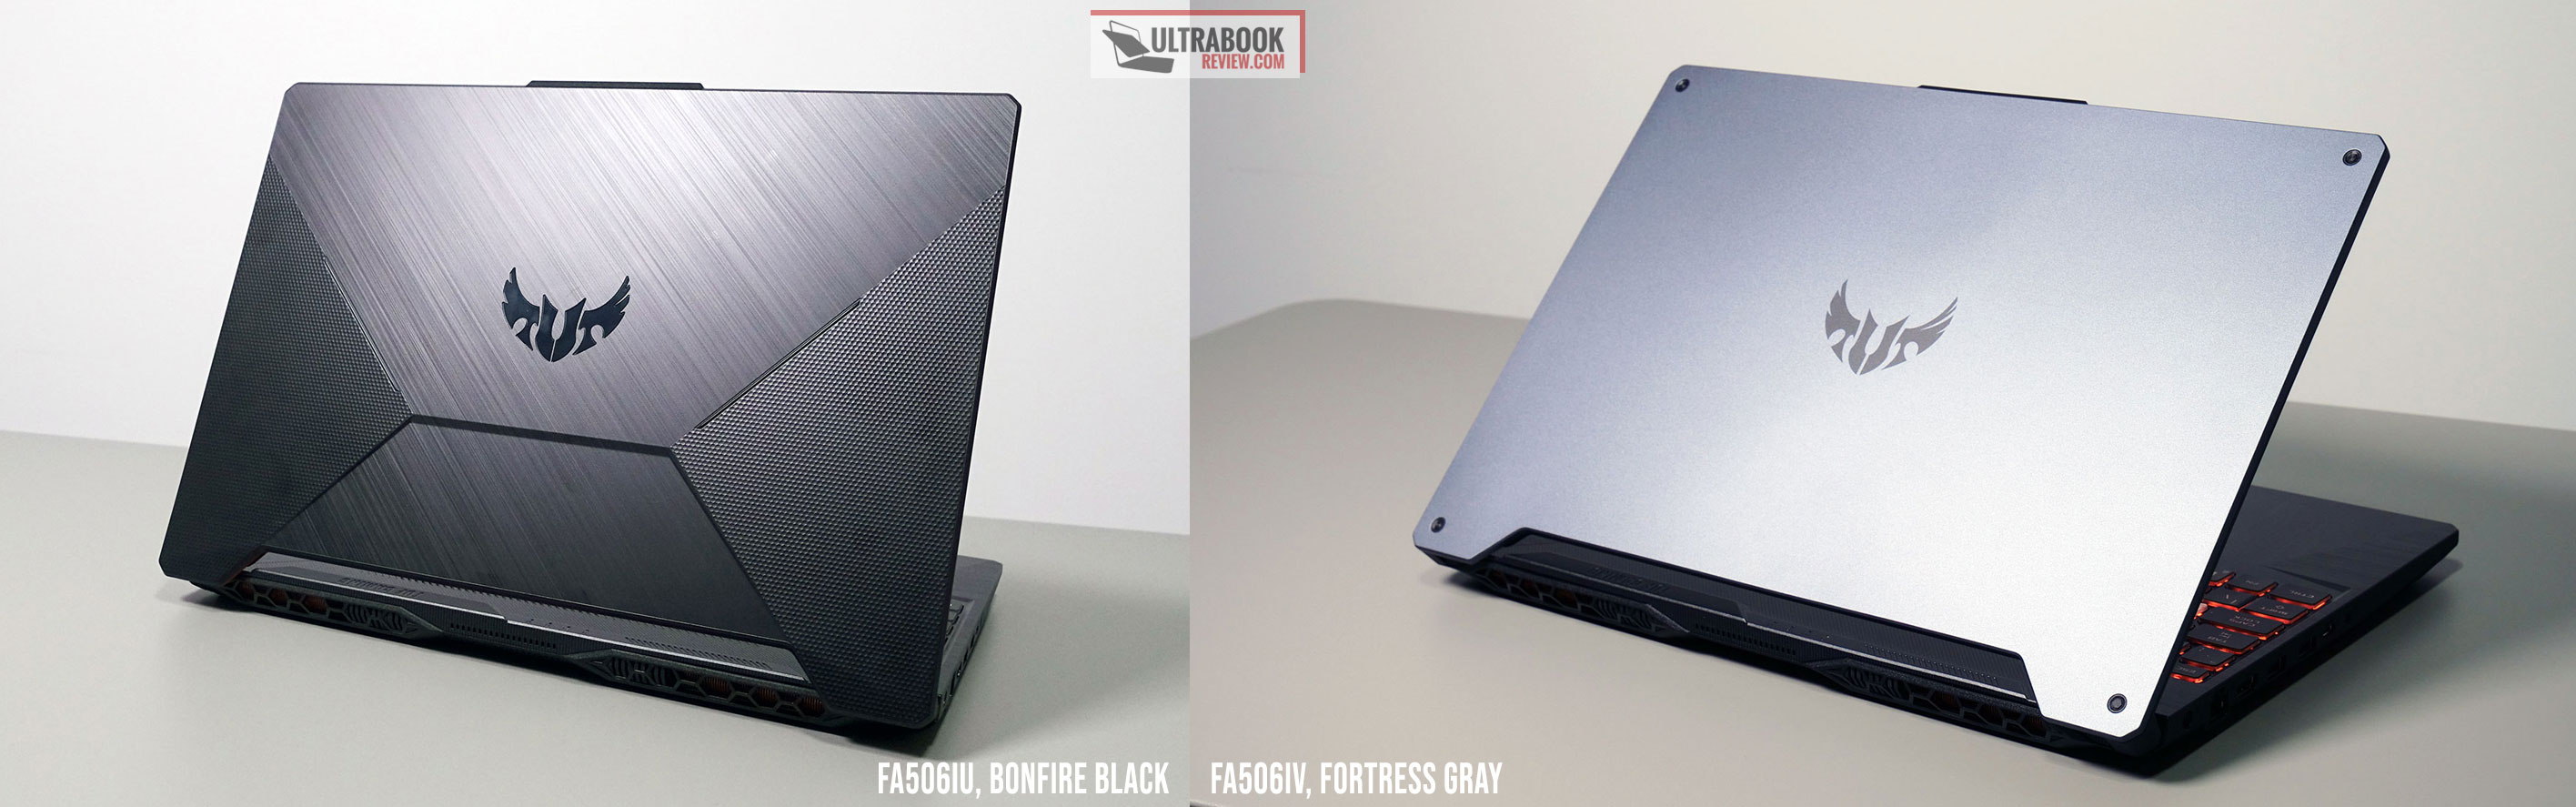 Asus TUF A15 versions - Bonfire Black vs Fortress Gray